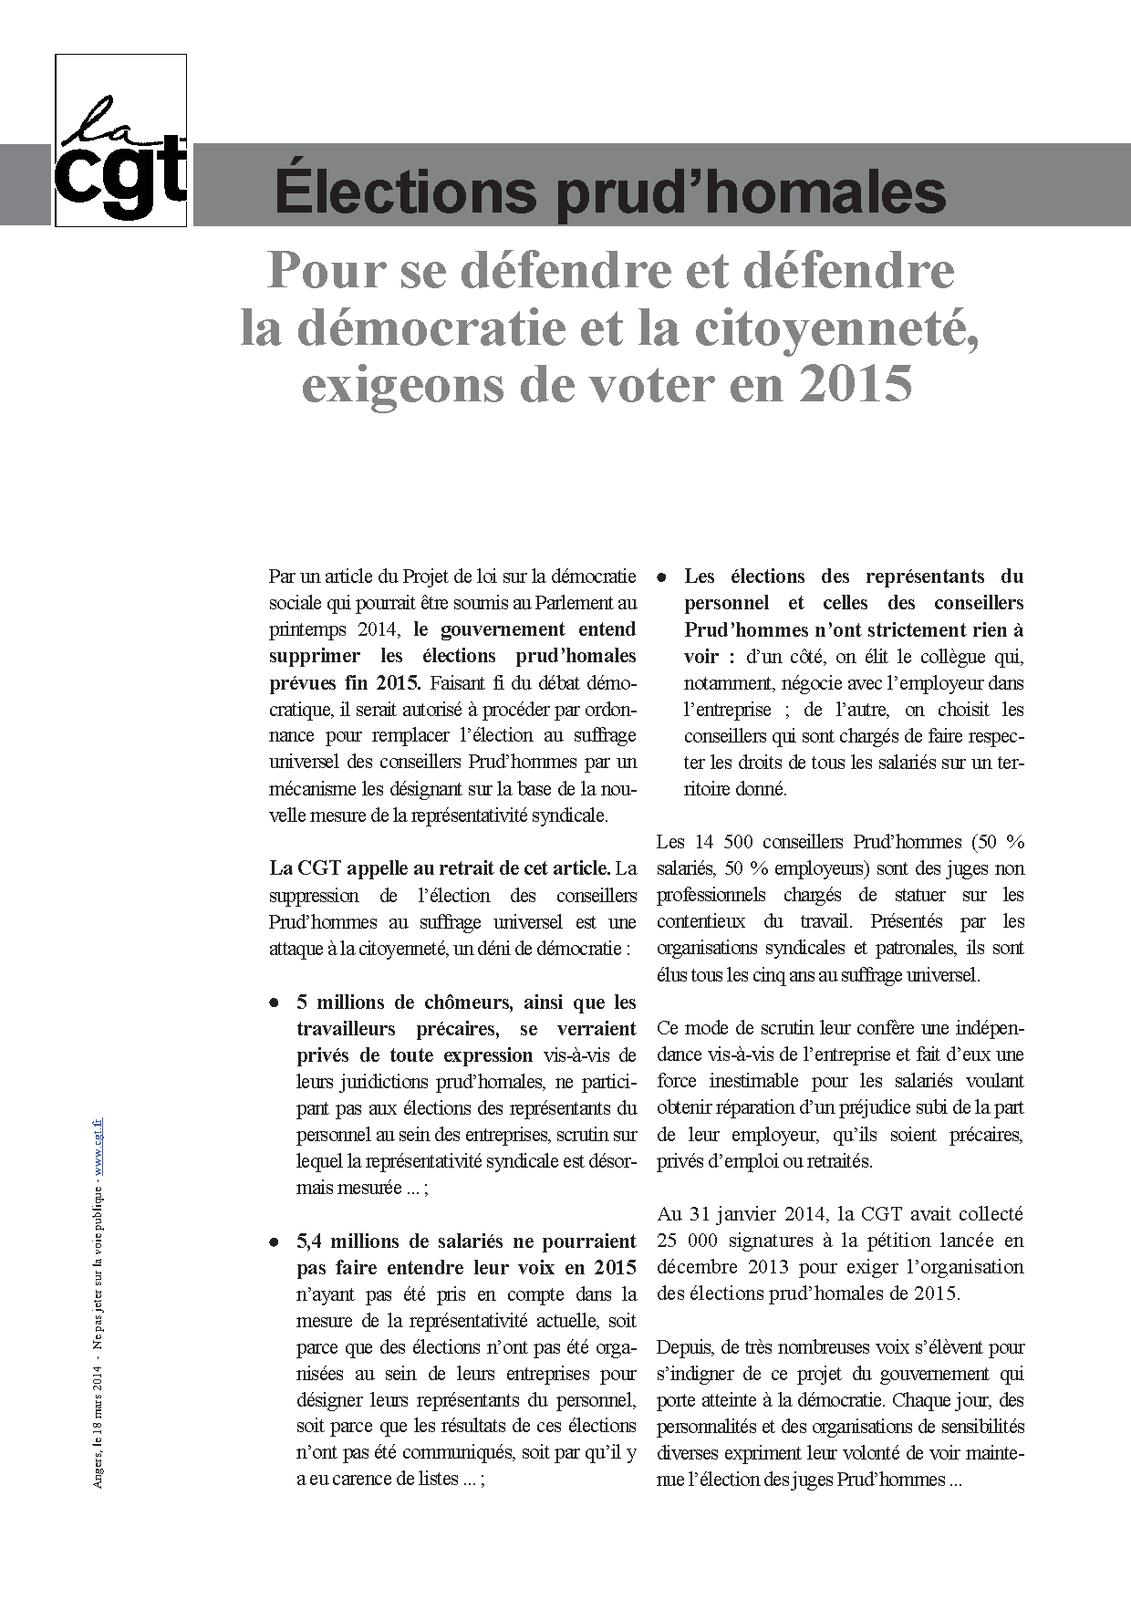 CAMPAGNE ELECTIONS PRUD'HOMALES 2015: